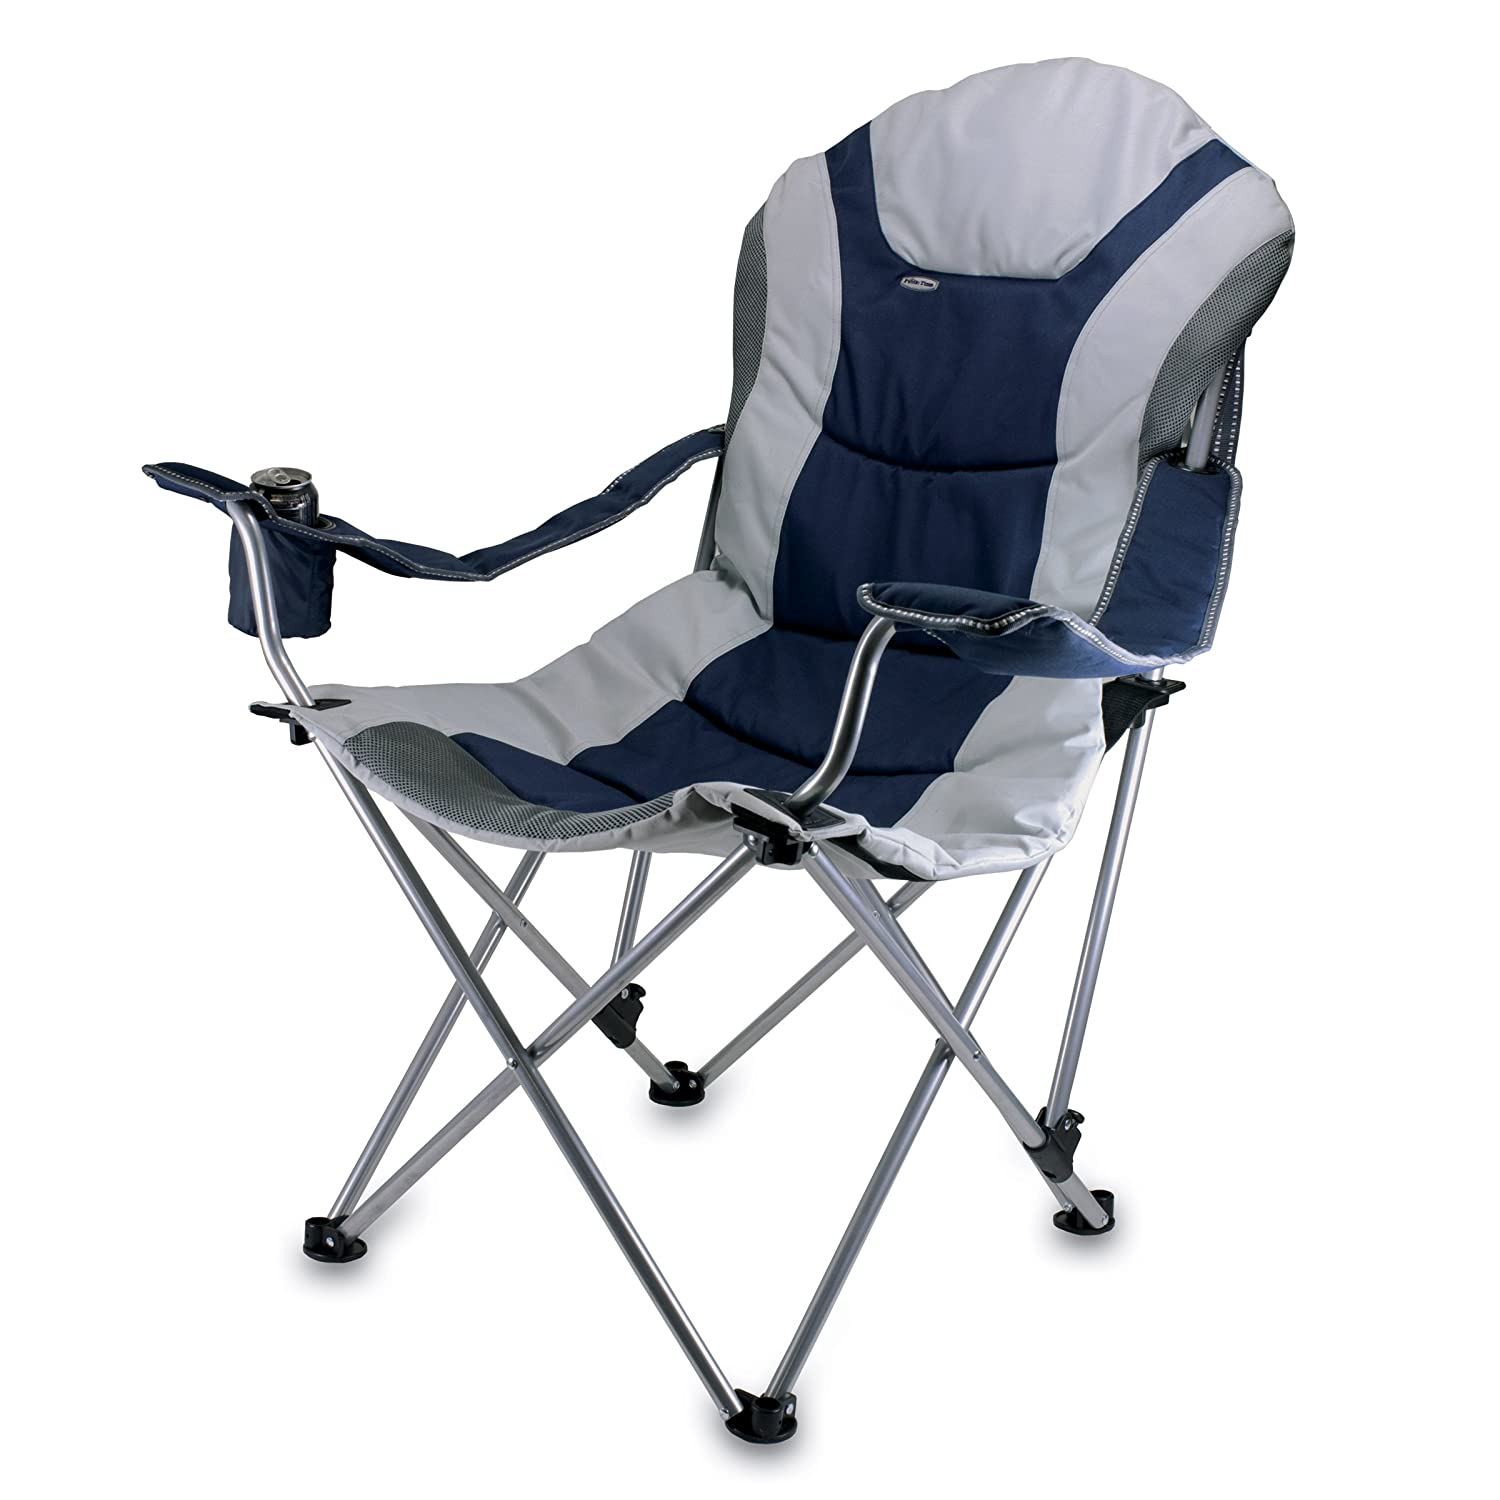 Lawn chair portable reclining padded back navy blue w for Reclining patio chair